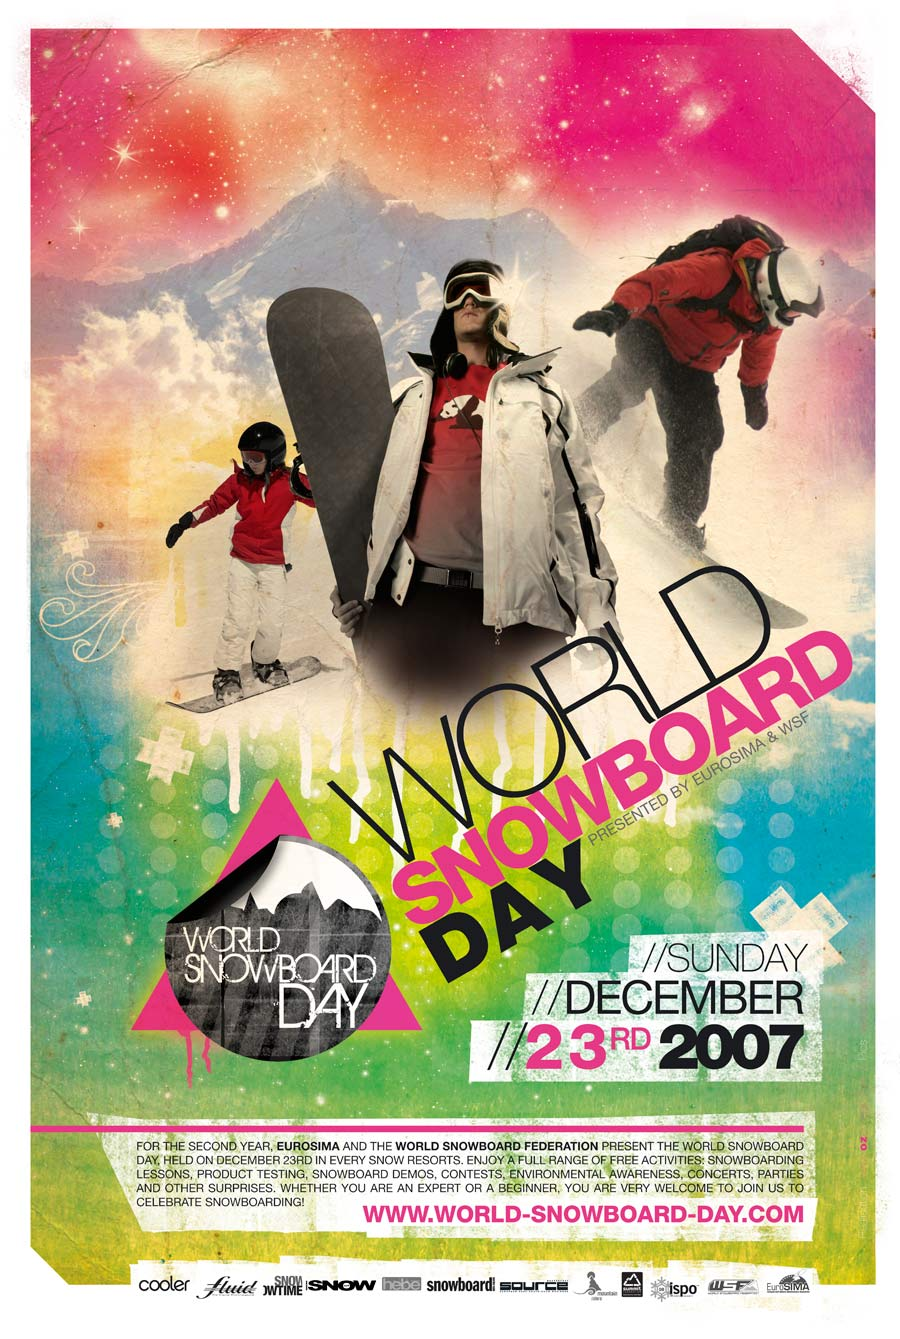 World Snowboard Day 2007